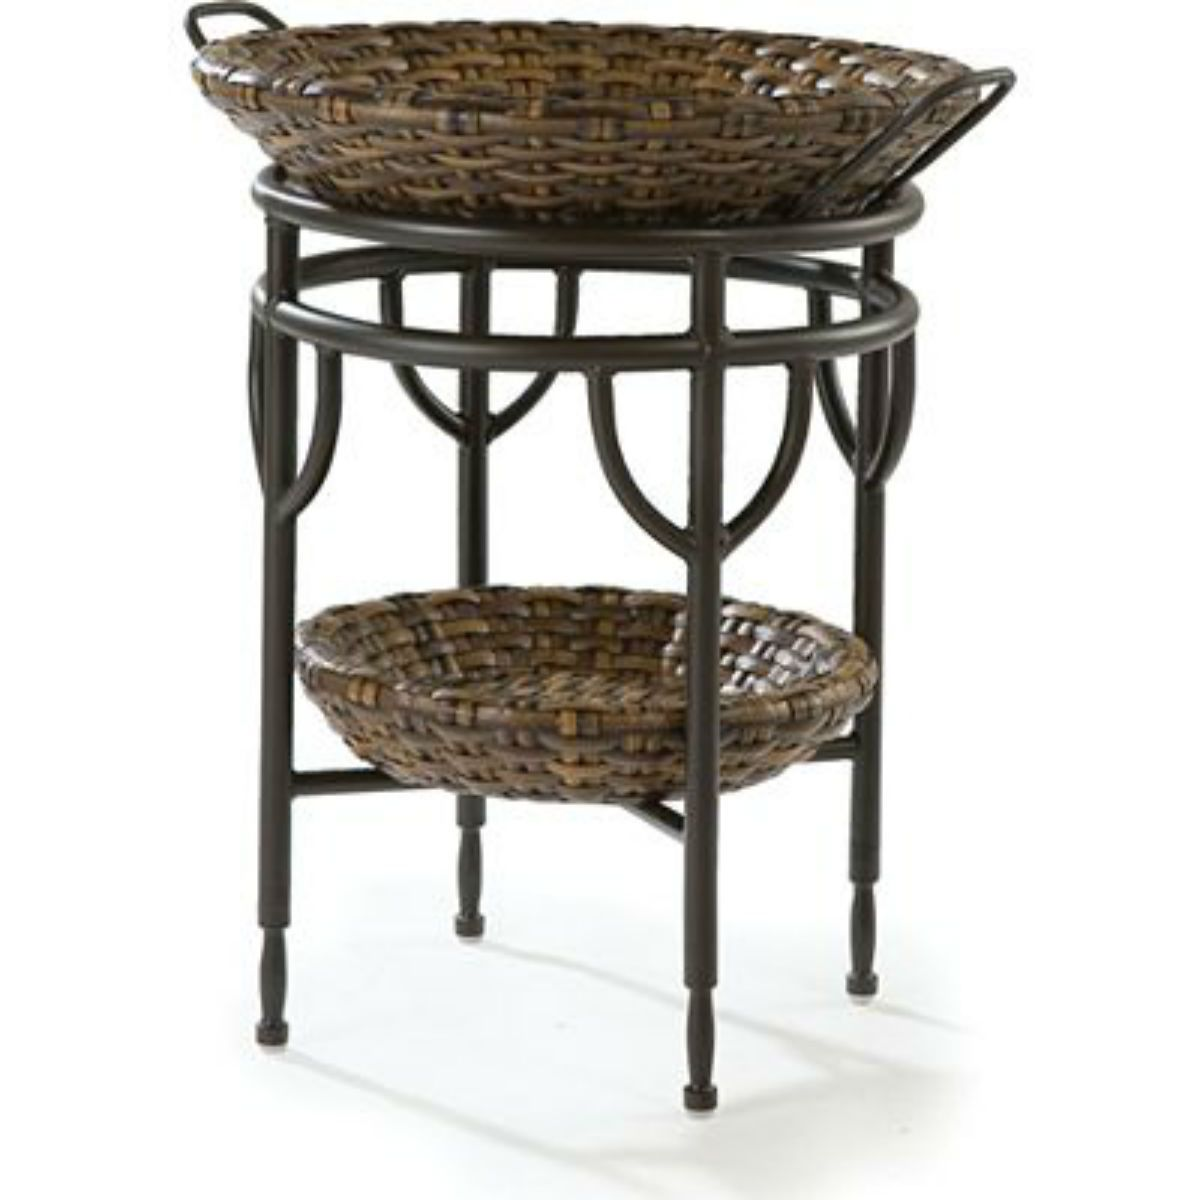 bali hand woven synthetic wicker round accent table french with storage thresholdtm trunk bedside small rustic coffee oak acrylic clear side large white tablecloths cement patio